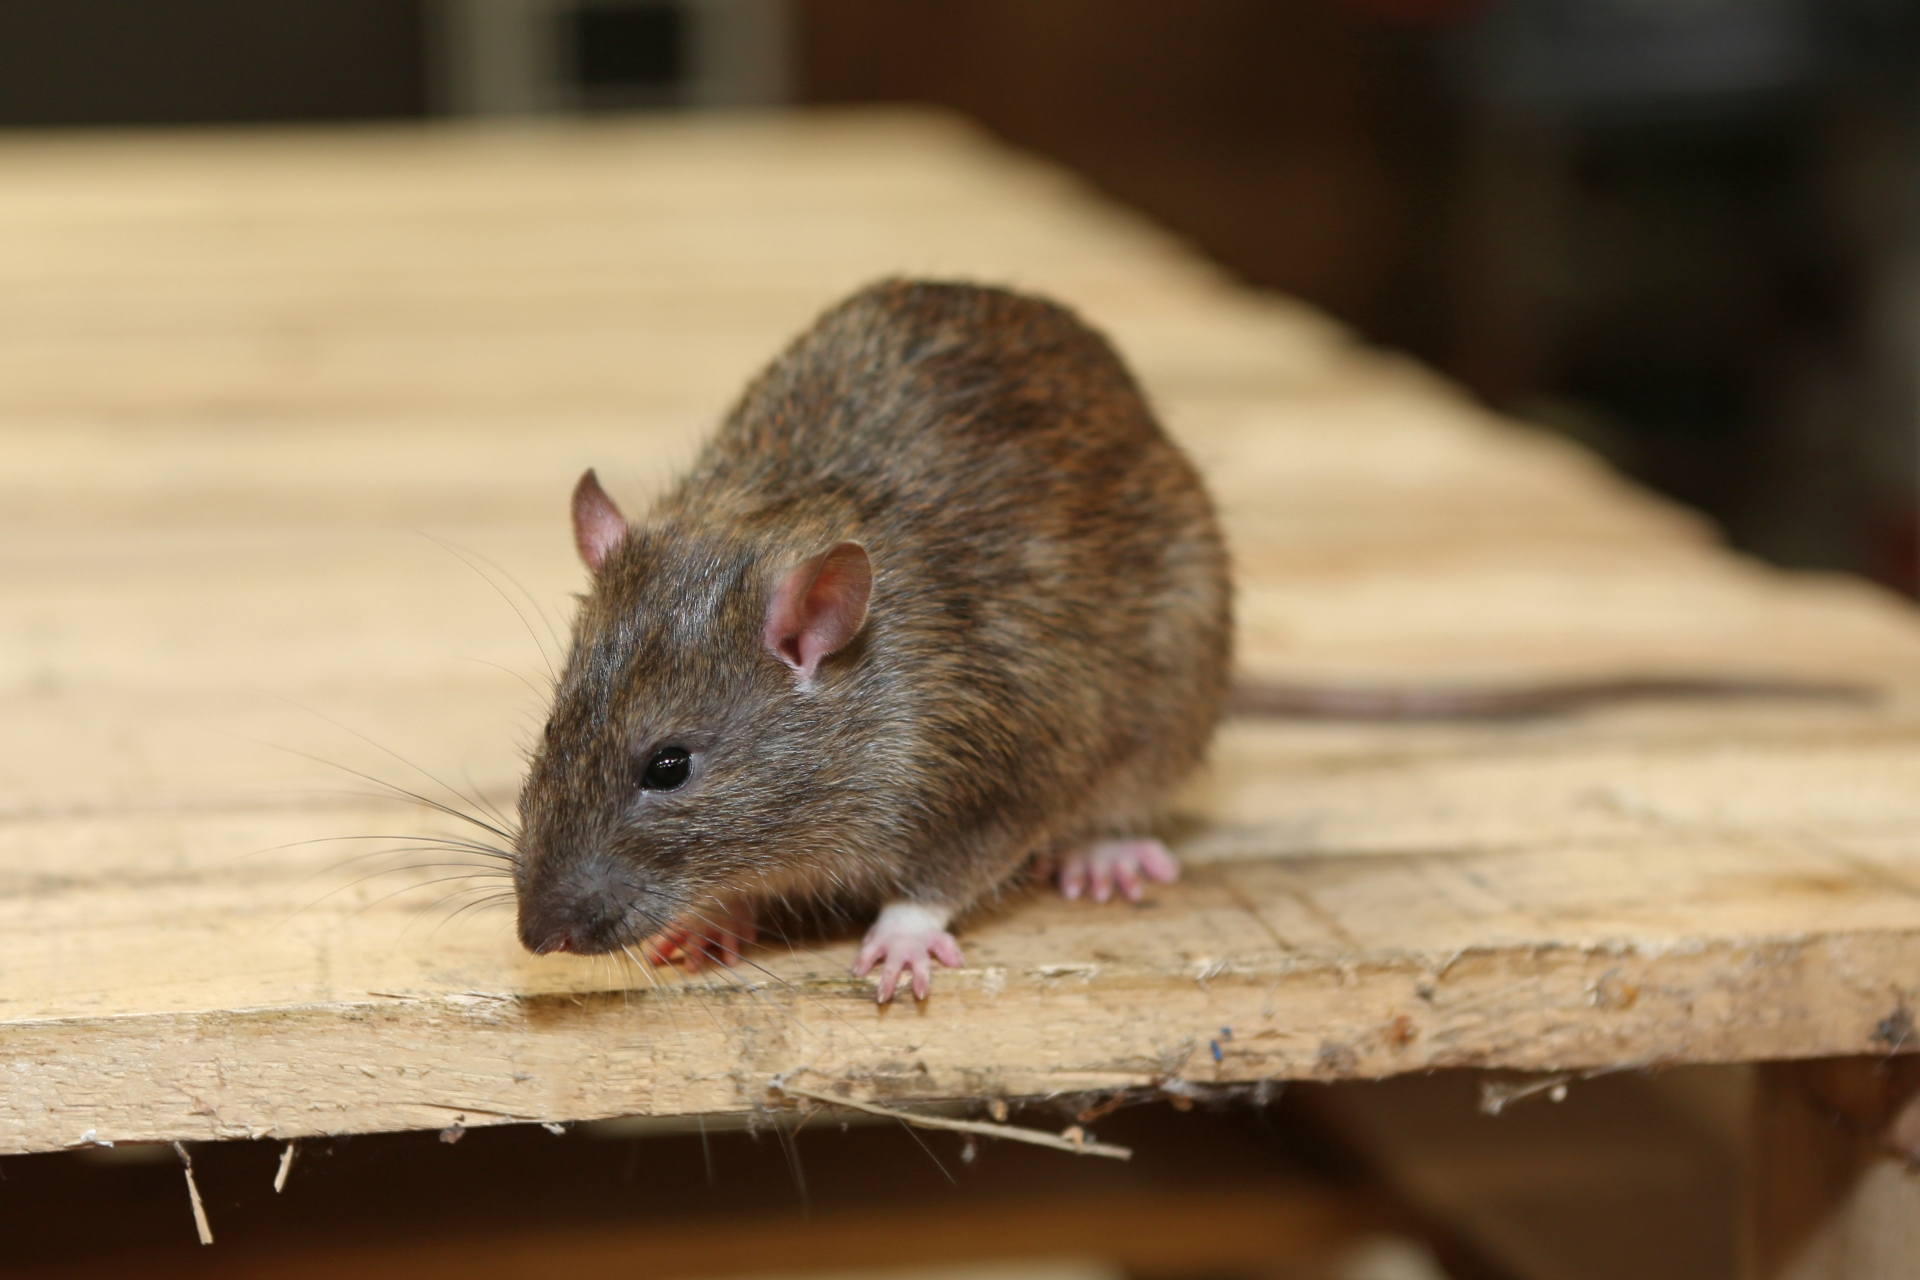 Rat Control, Pest Control in Havering-atte-Bower, Abridge, RM4. Call Now 020 8166 9746